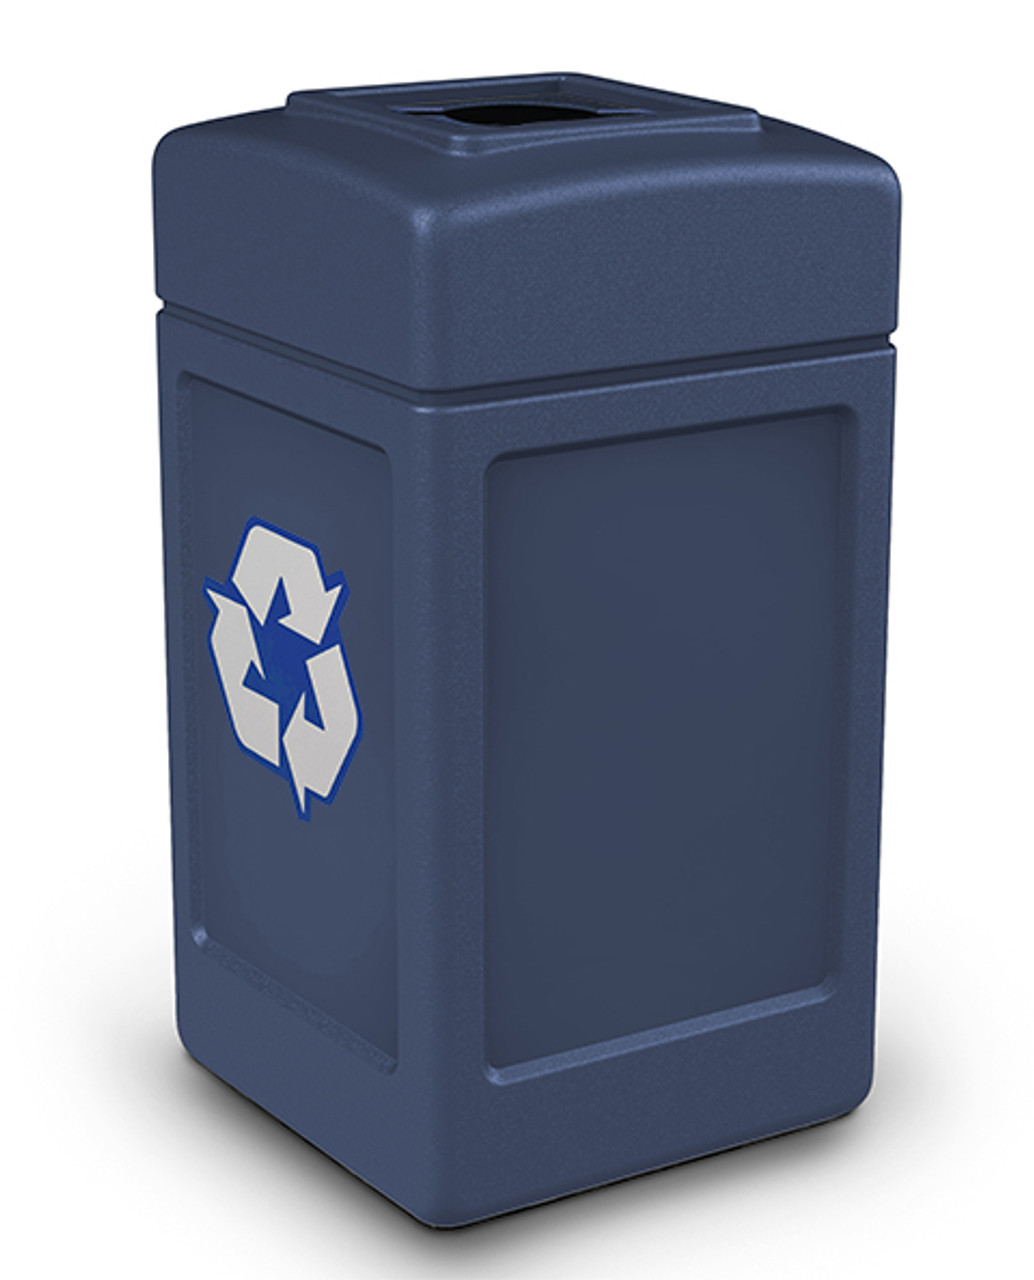 42 Gallon Indoor Outdoor Square Mixed Recycle Bin (Co-Mingle Opening, 8 Colors) DARK BLUE